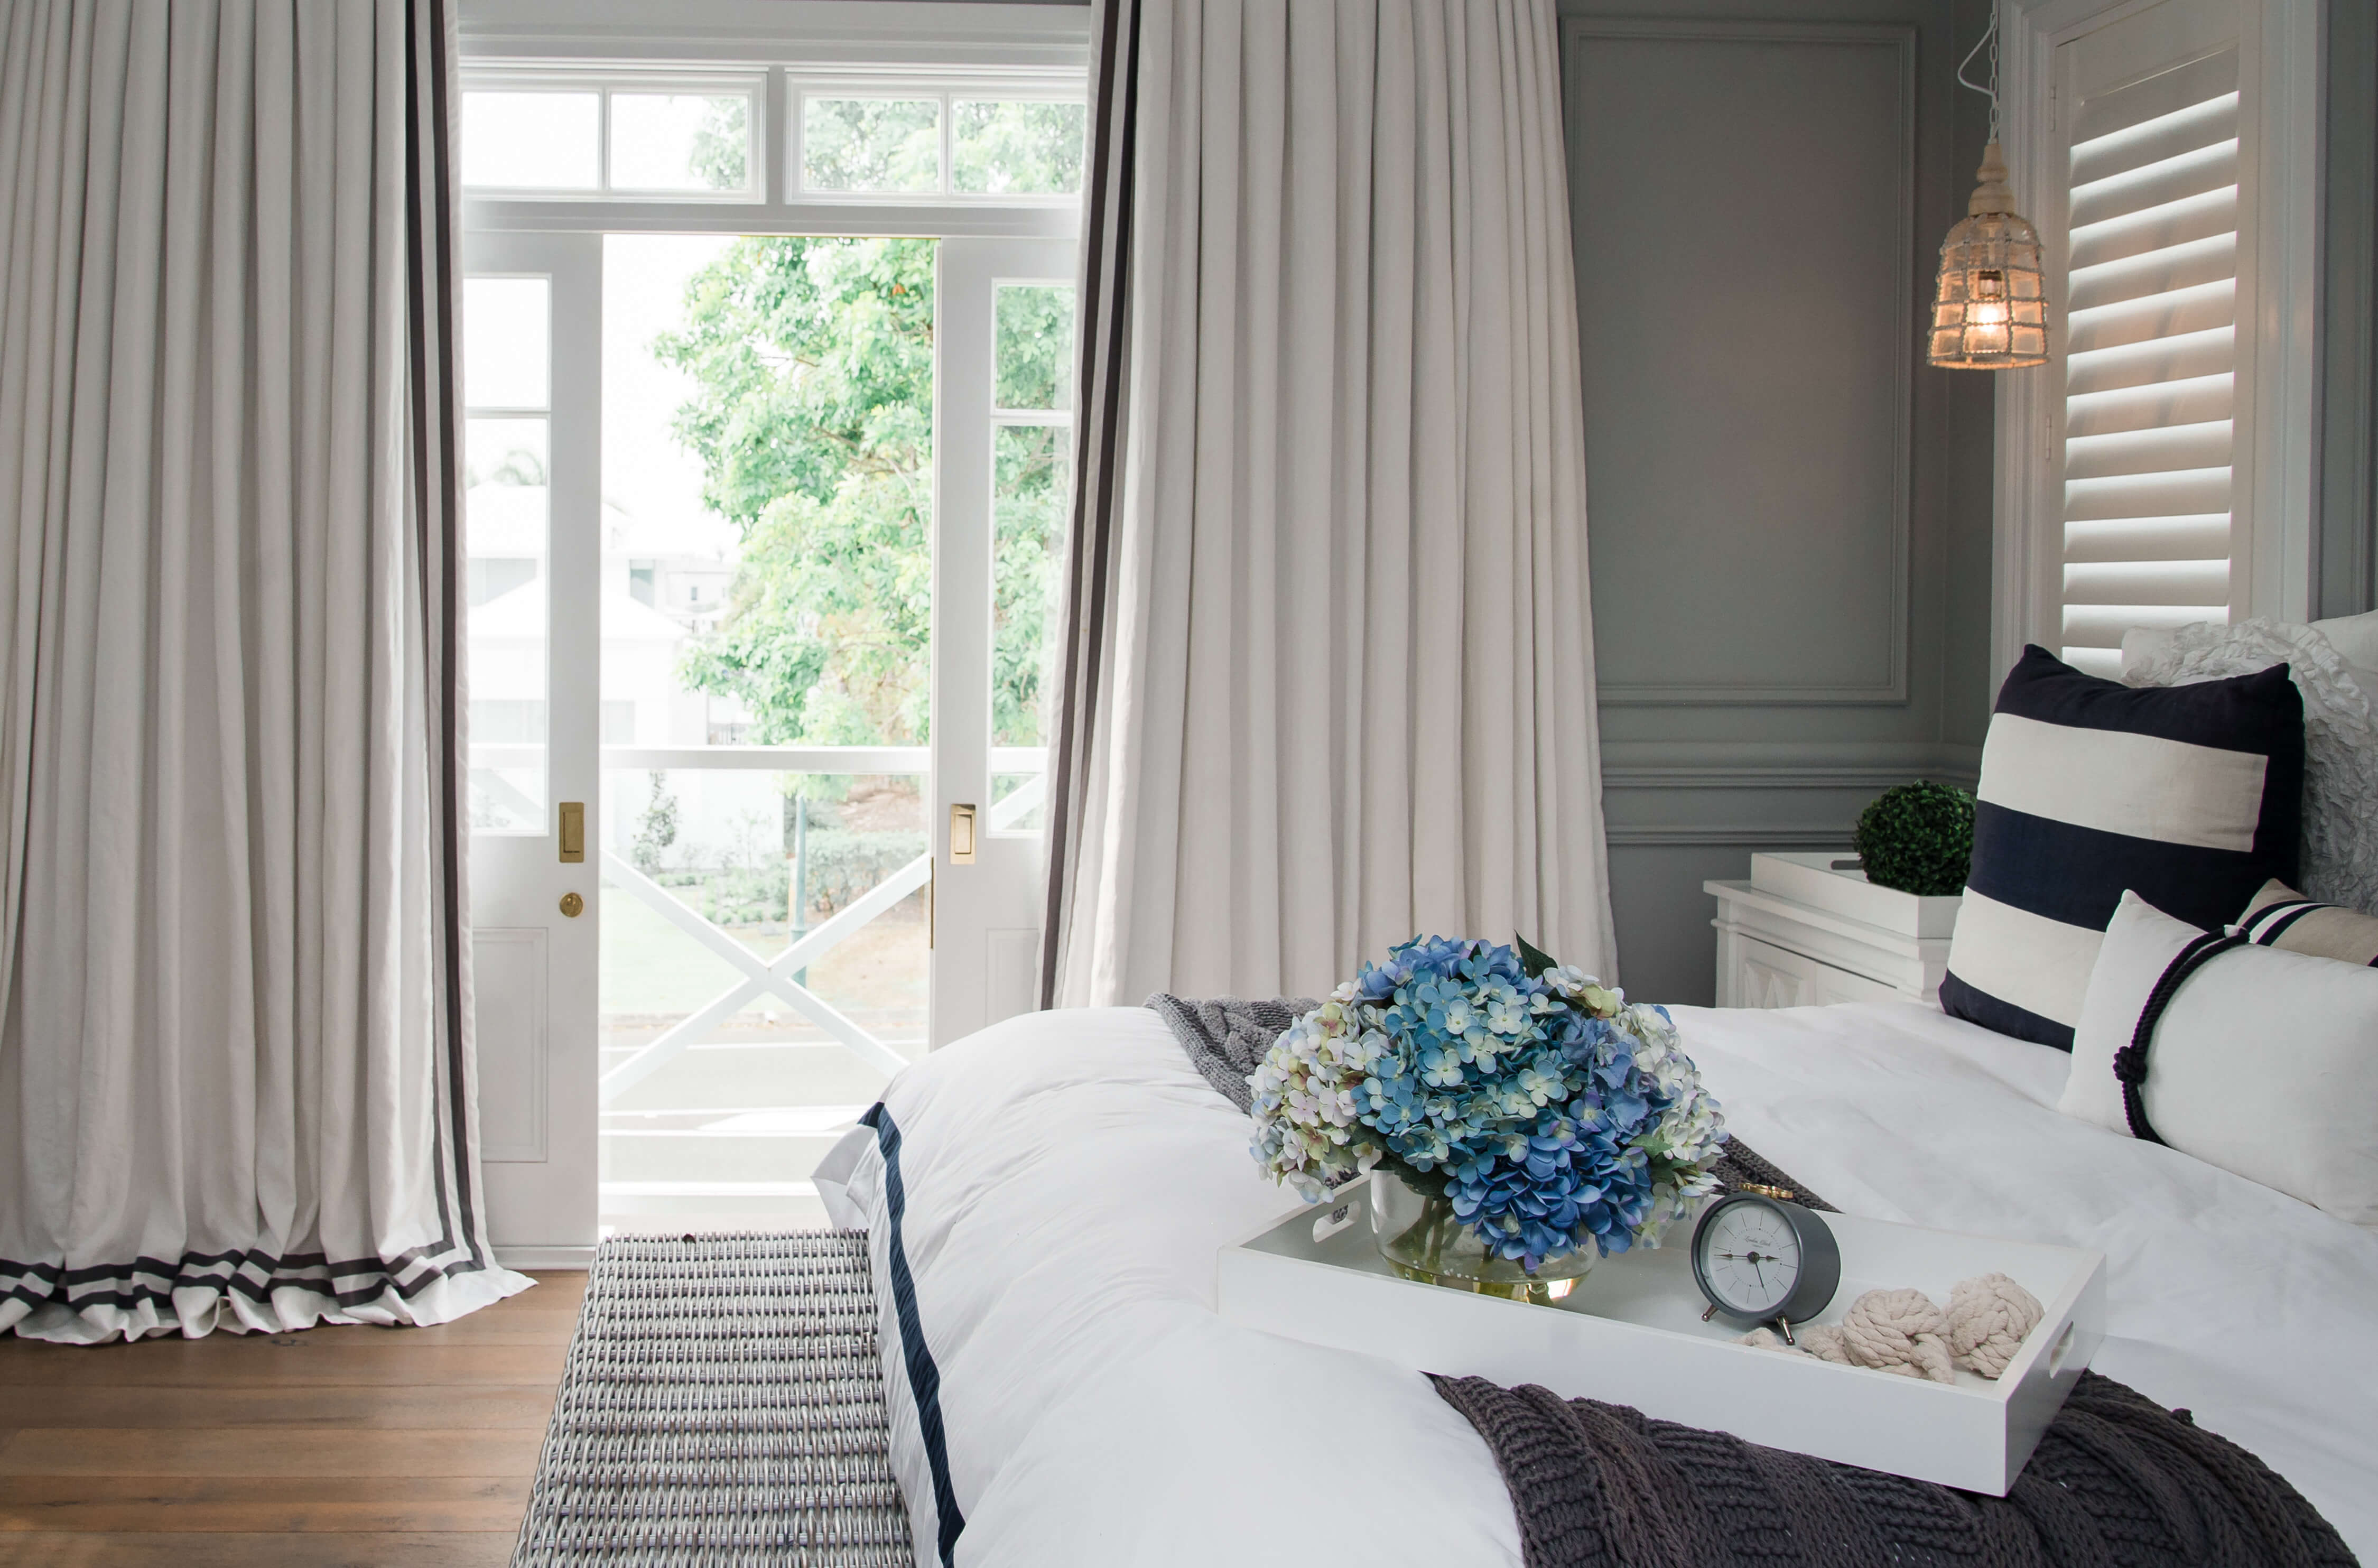 Designer Curtains Online Made To Order Easy To Design And Buy Drapeco